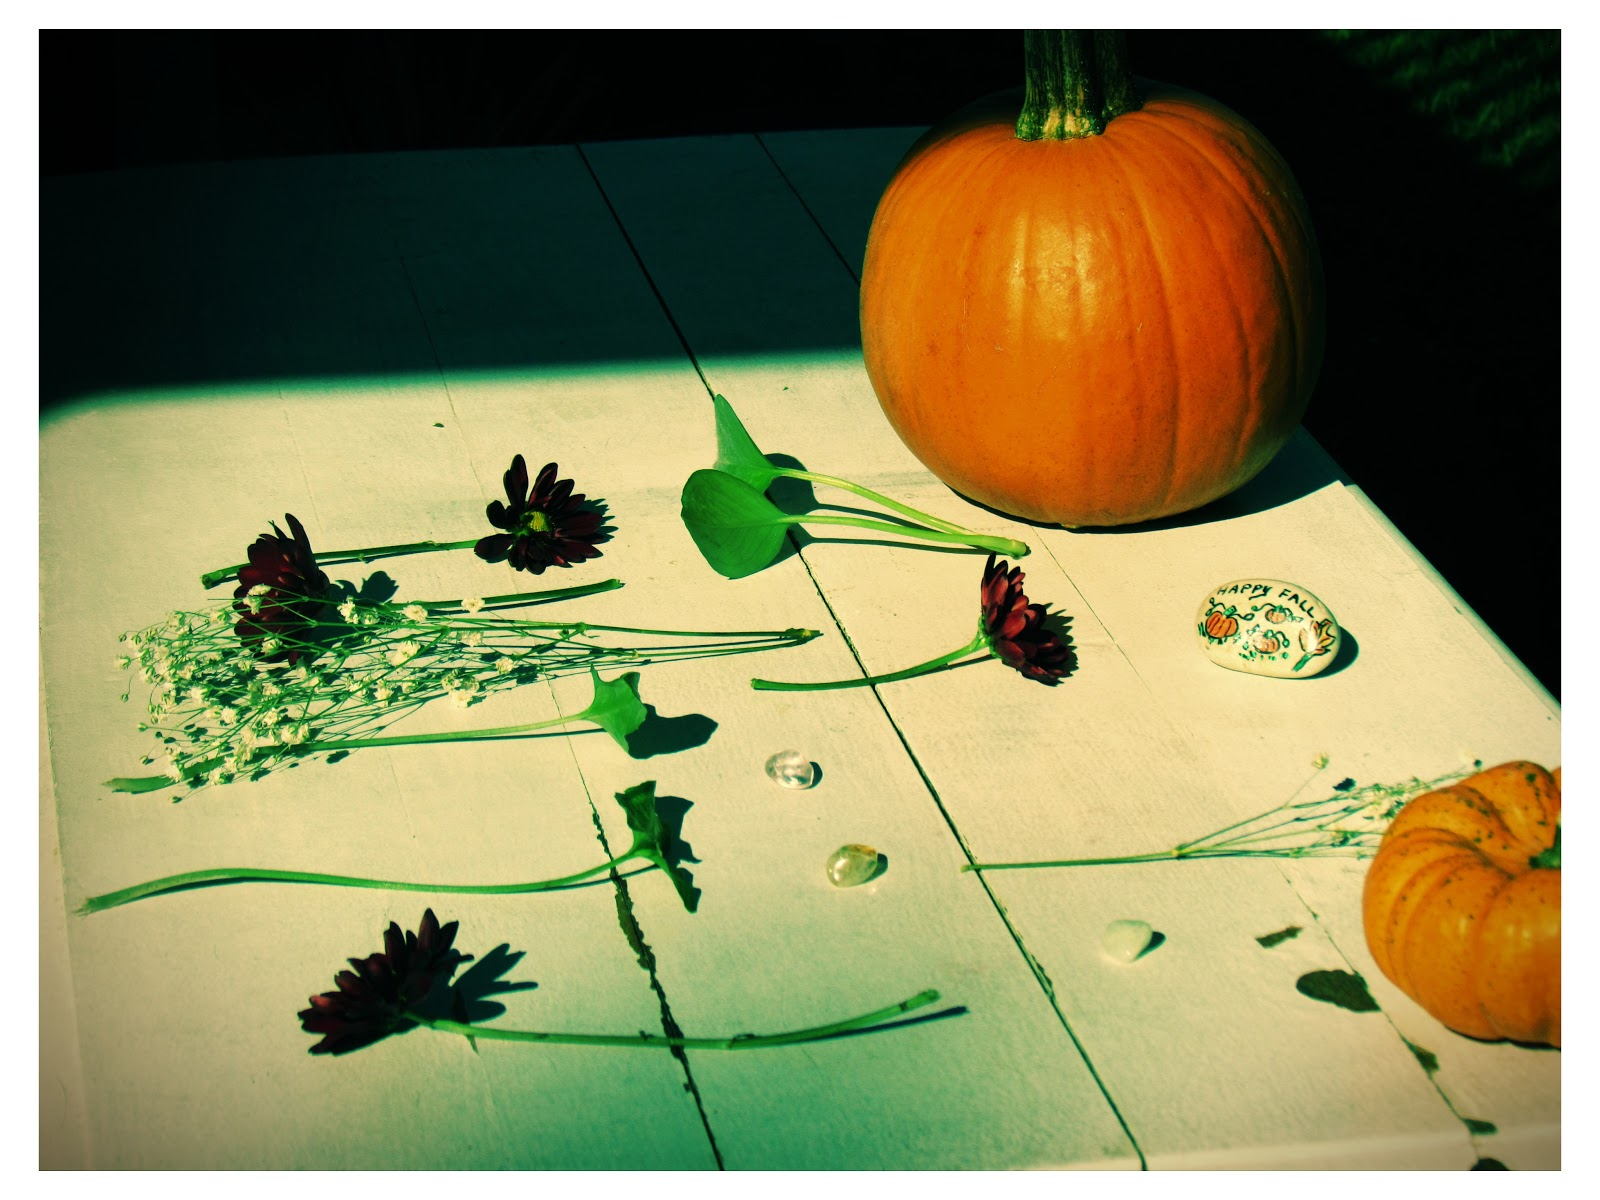 Lomo Art Photography Polaroids With Nature Art and Pumpkins + Flower Designs